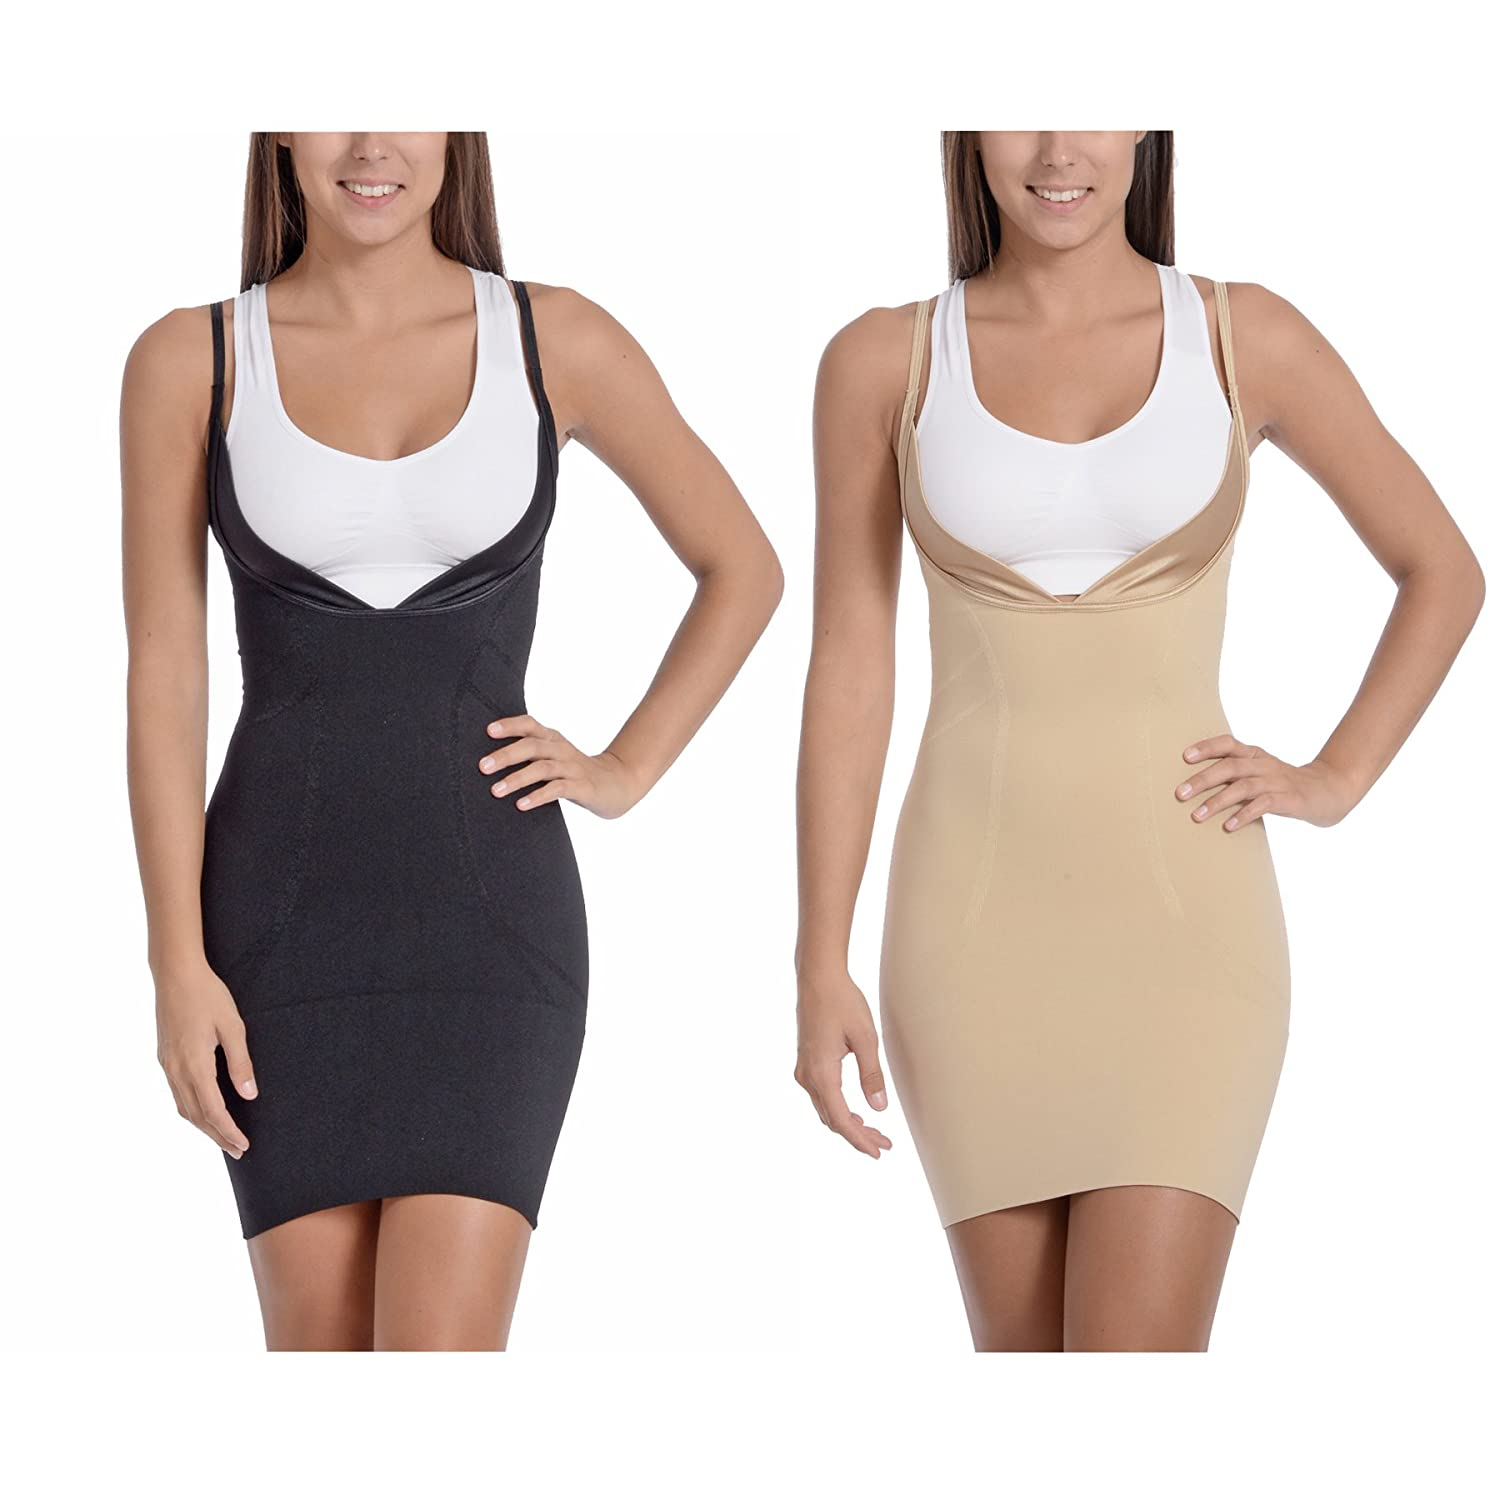 Body Beautiful Women's Open Bust Mid Thigh Full Body Slip Shaper with Butt Support ROSC_1348